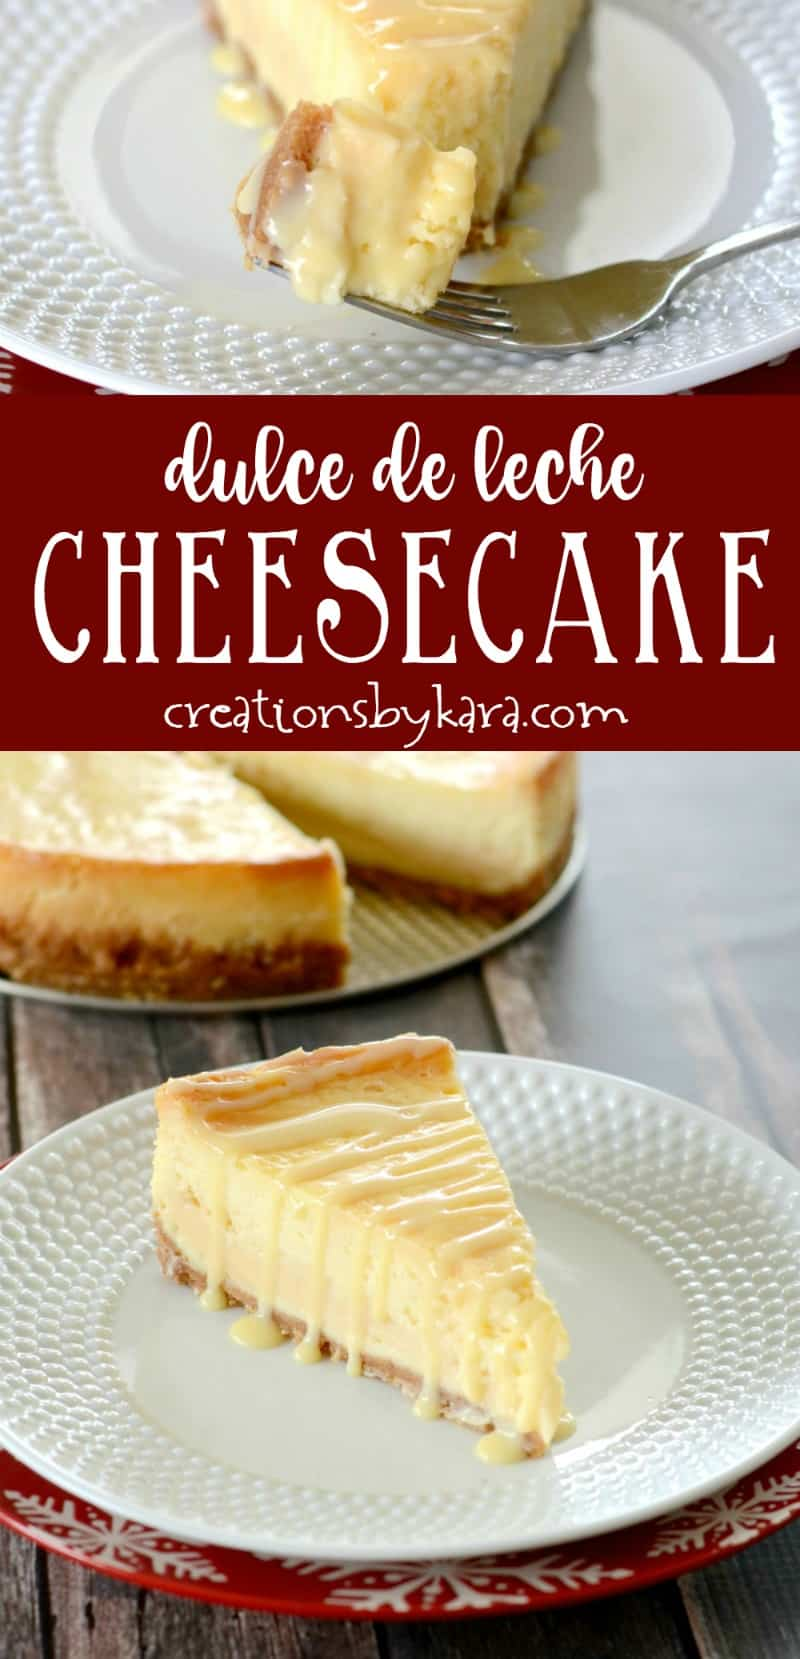 Dulce de Leche Cheesecake . . . sweet and creamy, this decadent cheesecake recipe is perfect for caramel lovers! #cheesecake #dulcedeleche